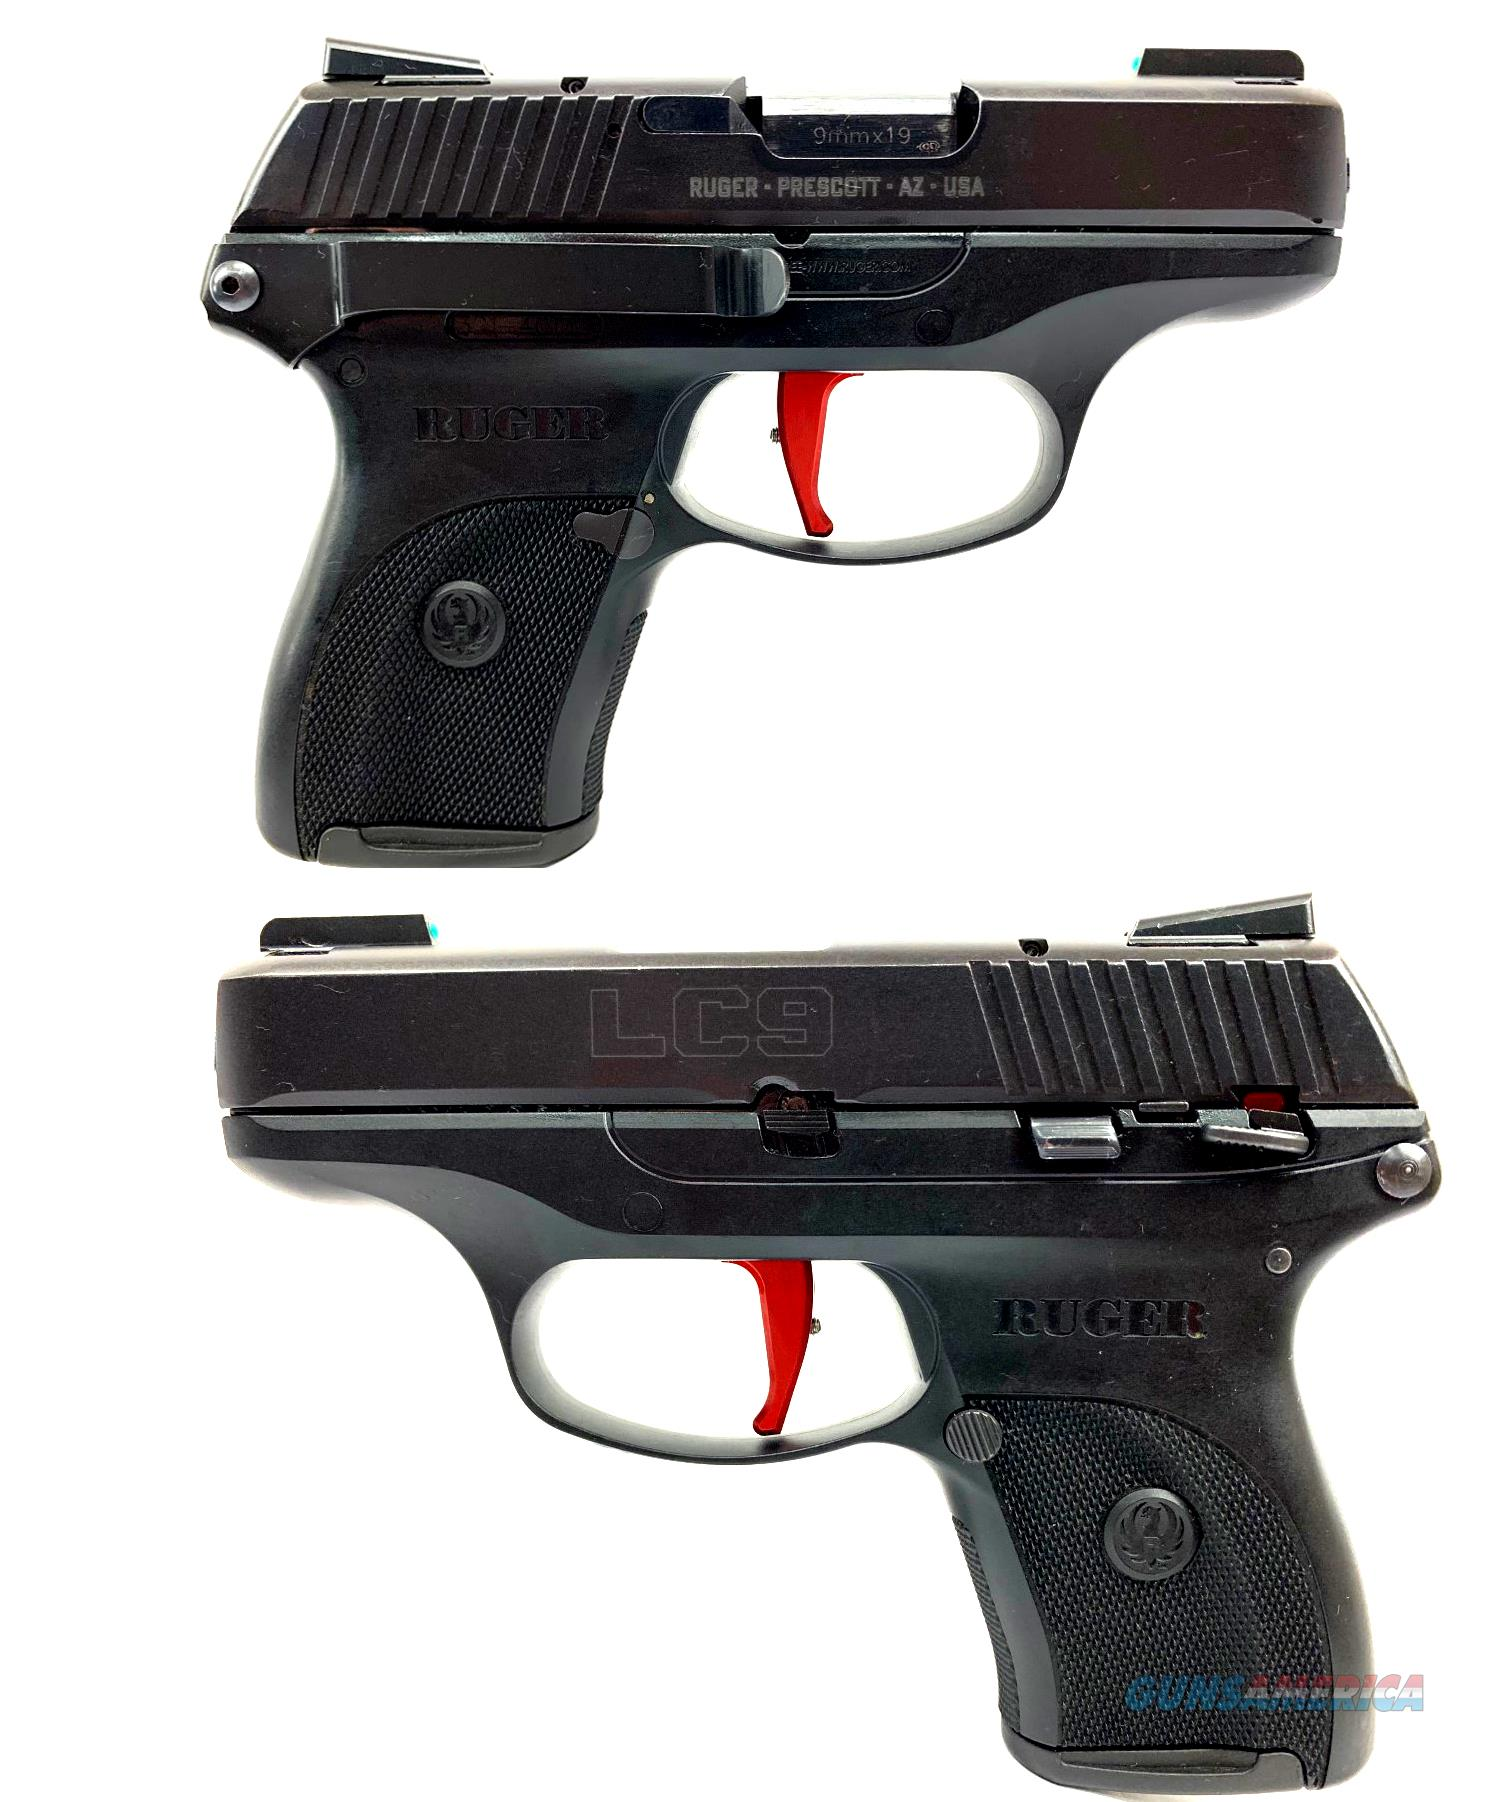 Ruger LC9 Semi-Automatic 9MM Pistol W/ Upgrades  Guns > Pistols > Ruger Semi-Auto Pistols > LC9